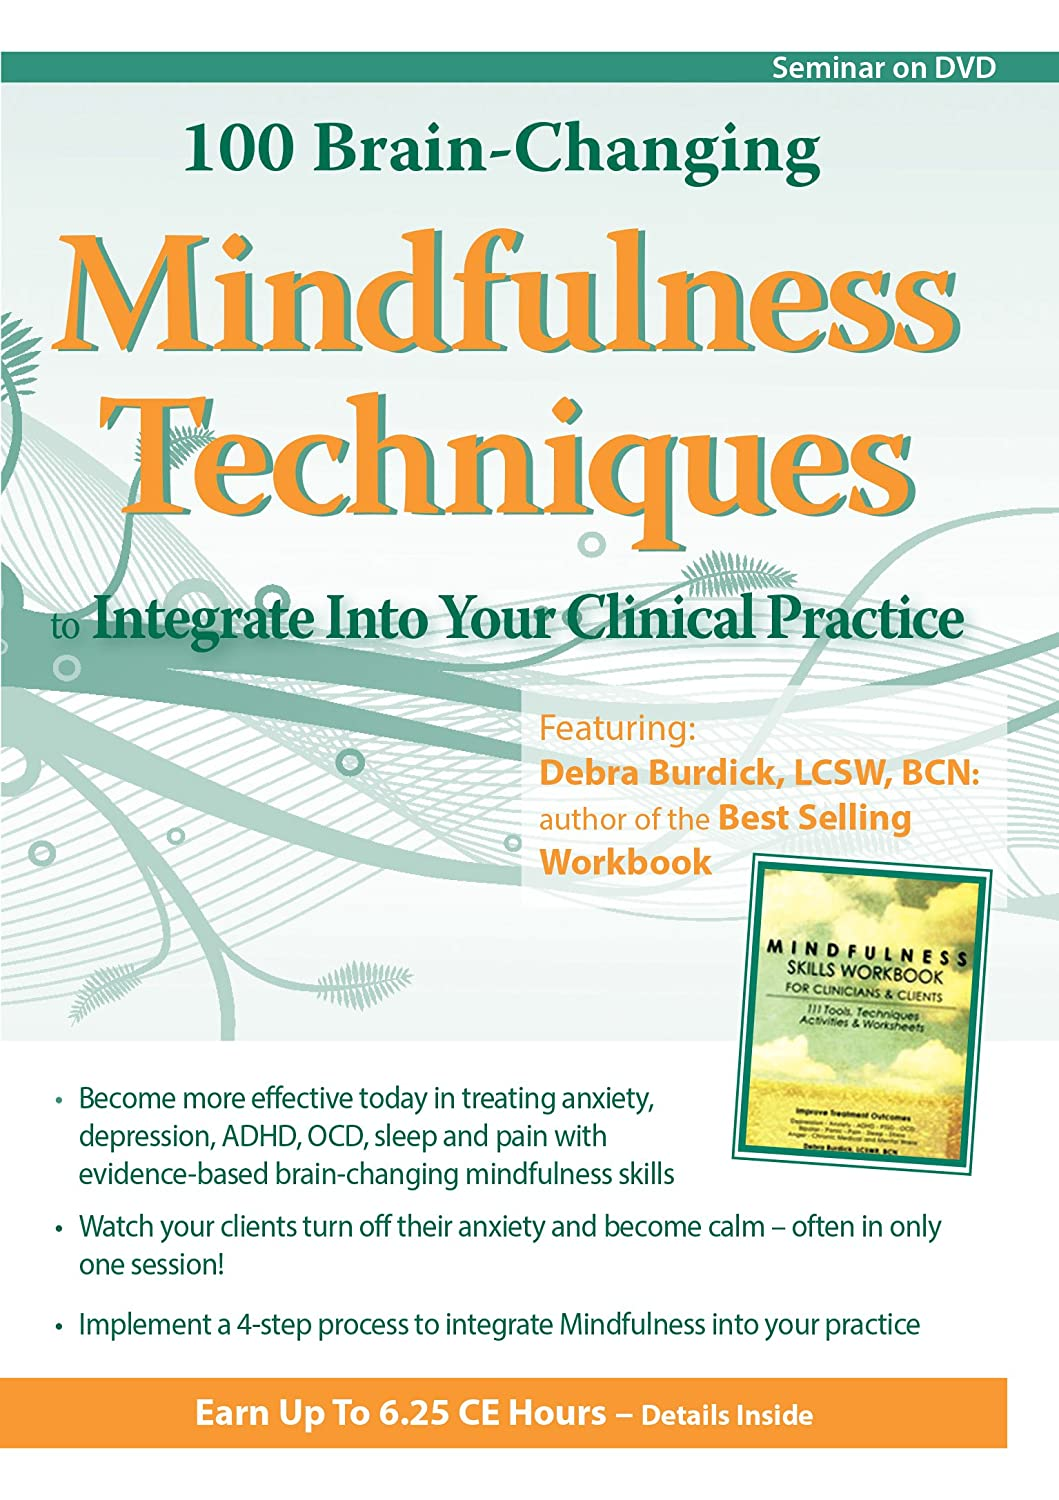 Amazon.com: 100 Brain-Changing Mindfulness Techniques to Integrate ...